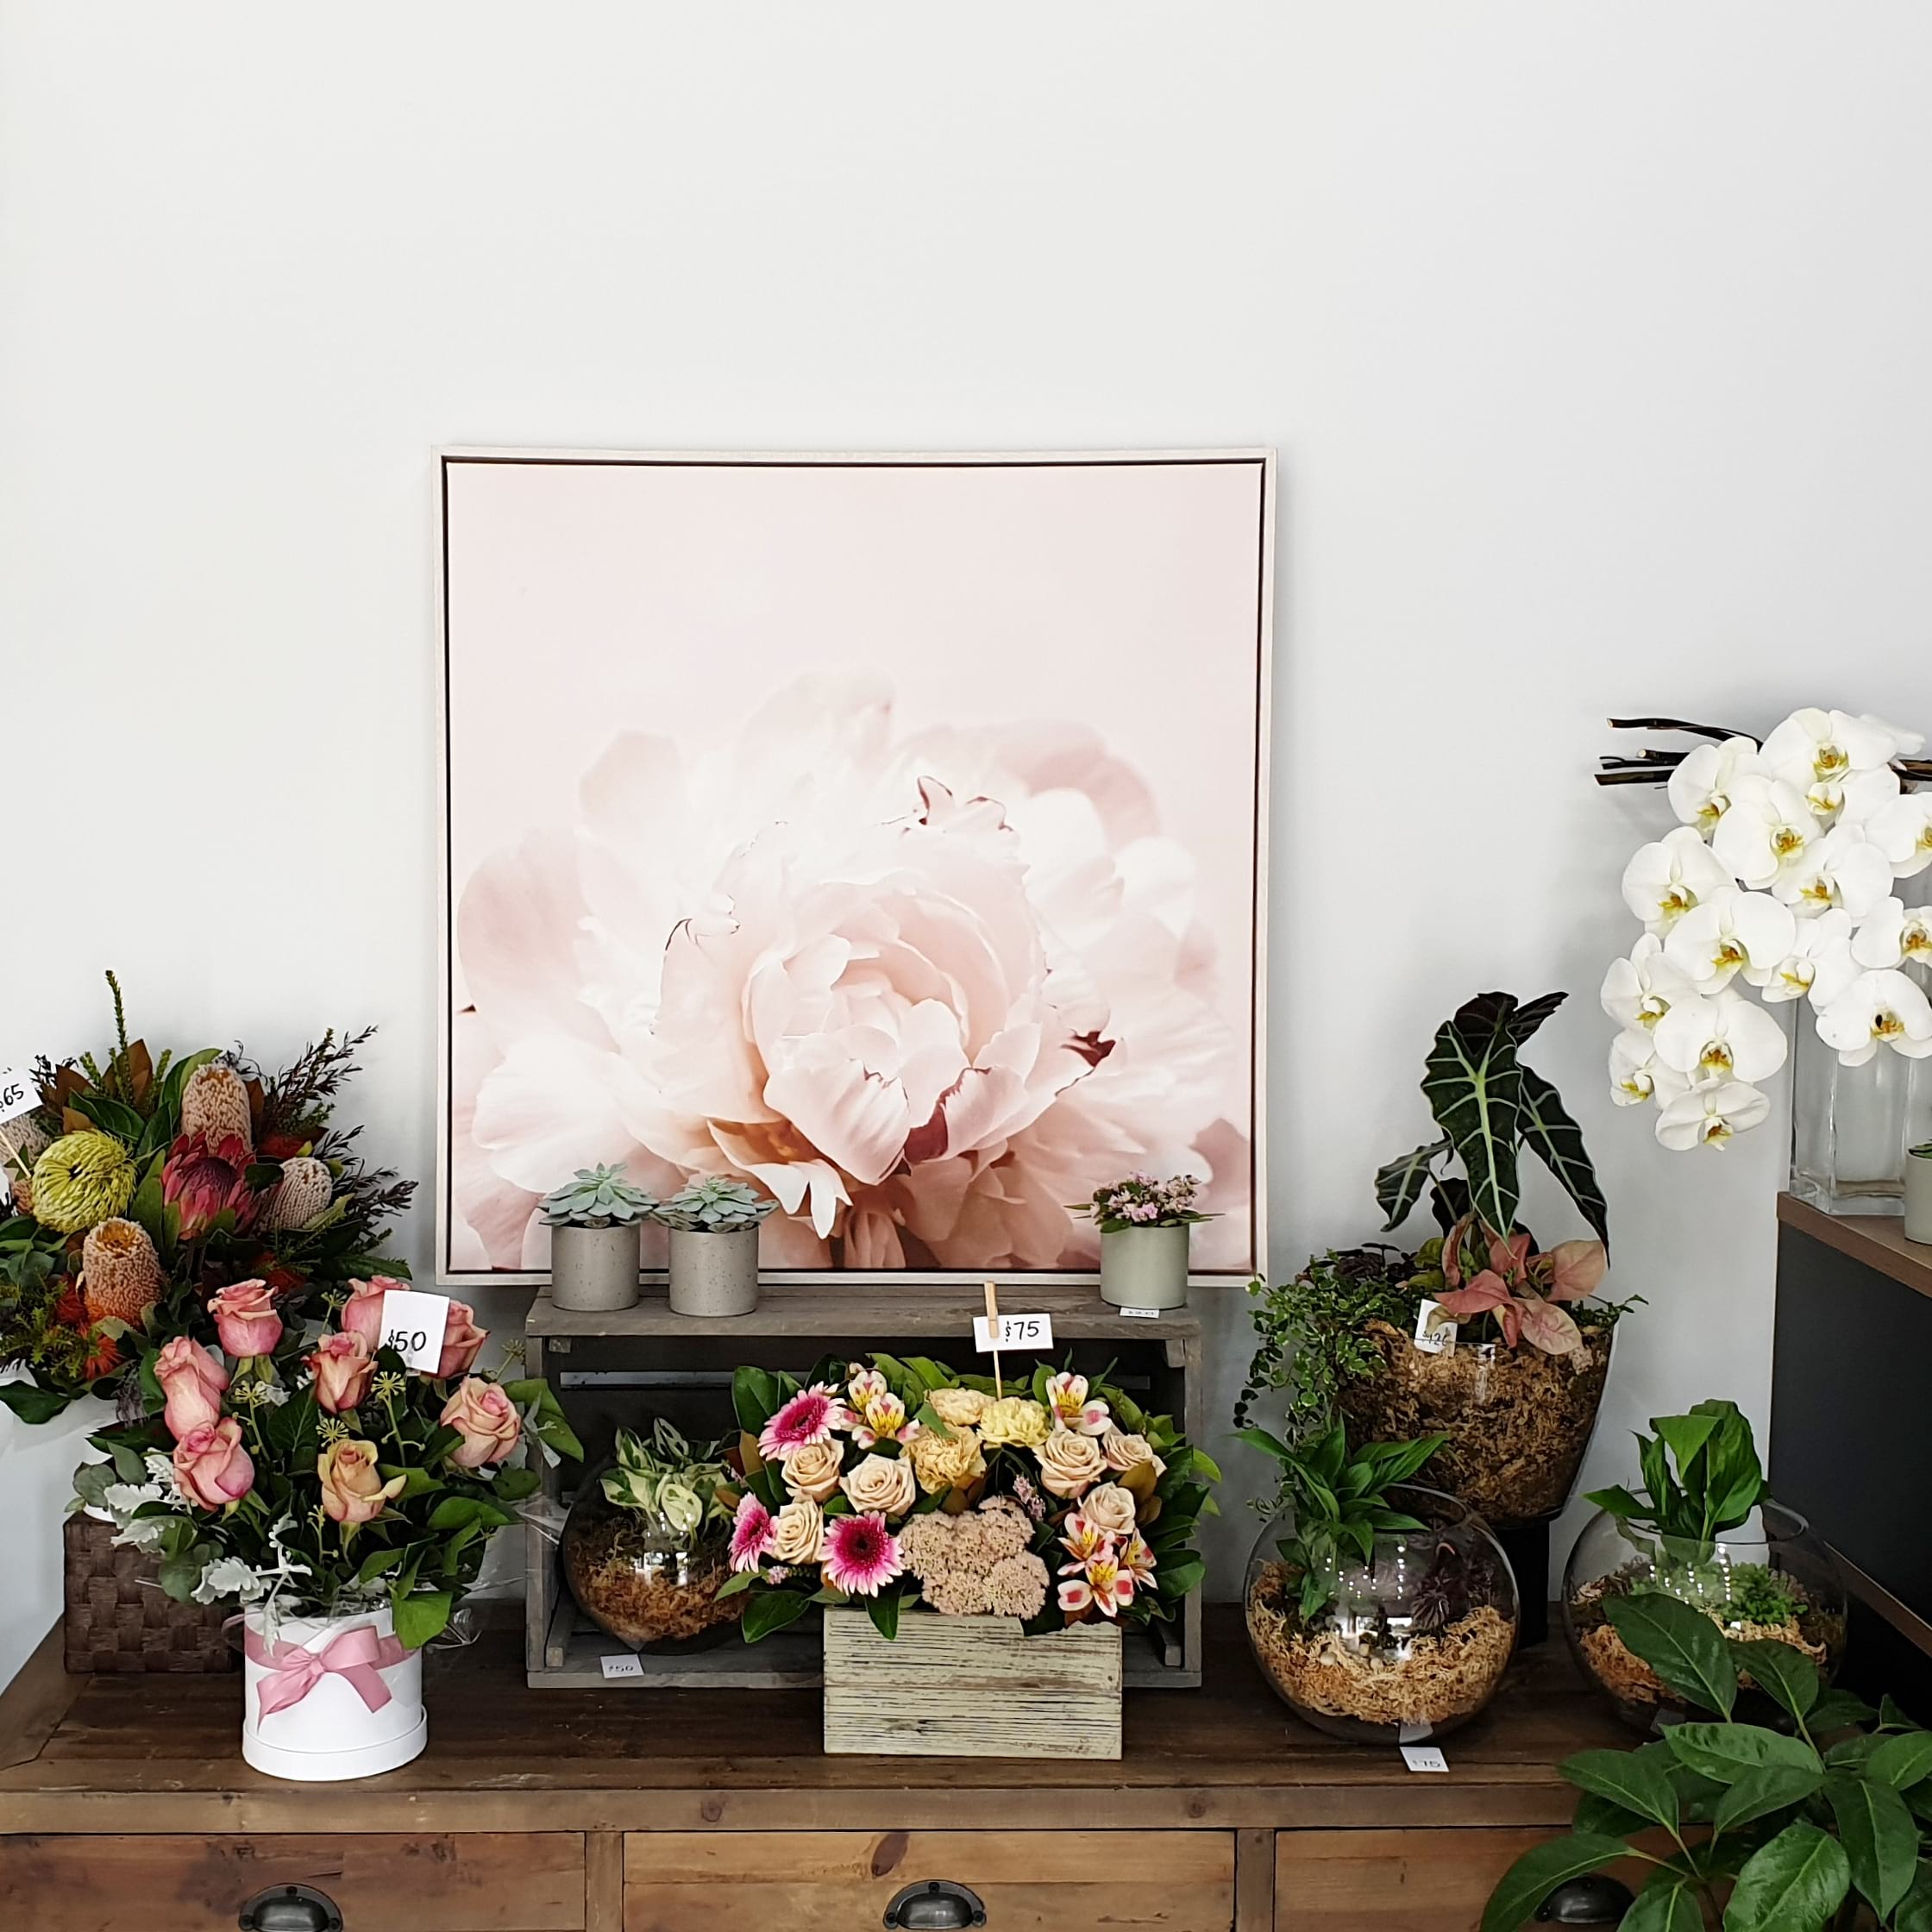 shop display, after, shows a painting of a peony and floral arrangements.